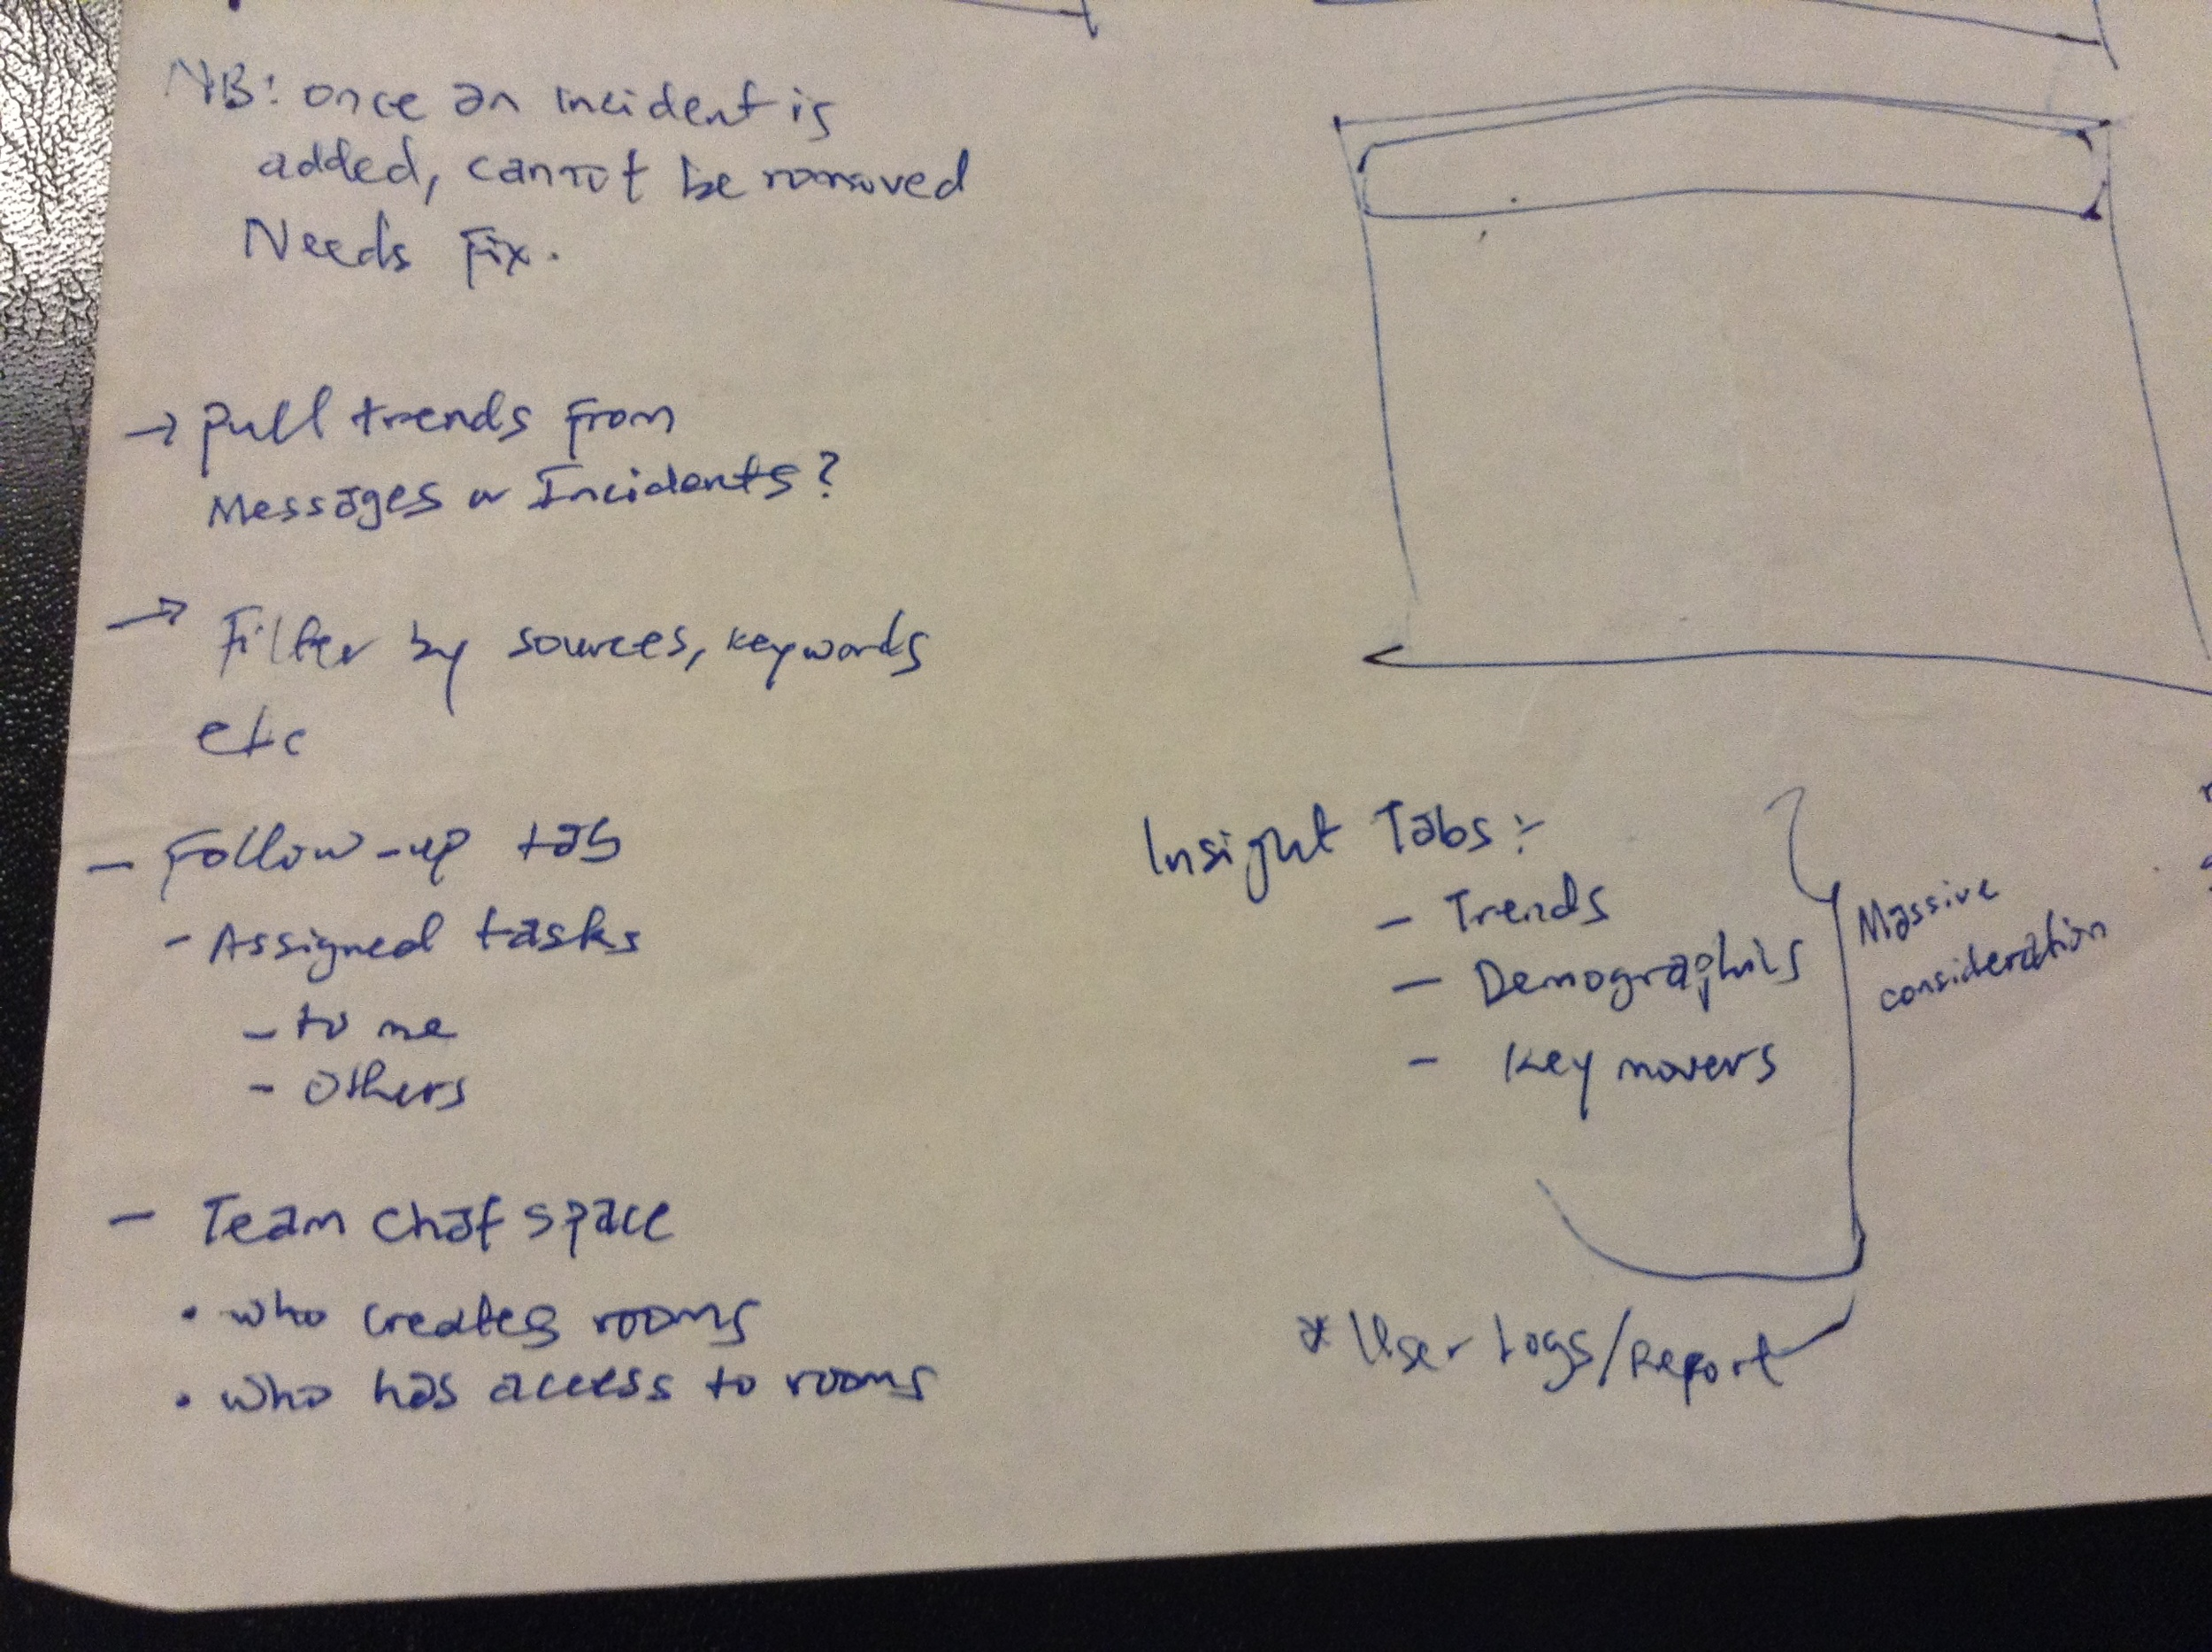 Some design components from user studies